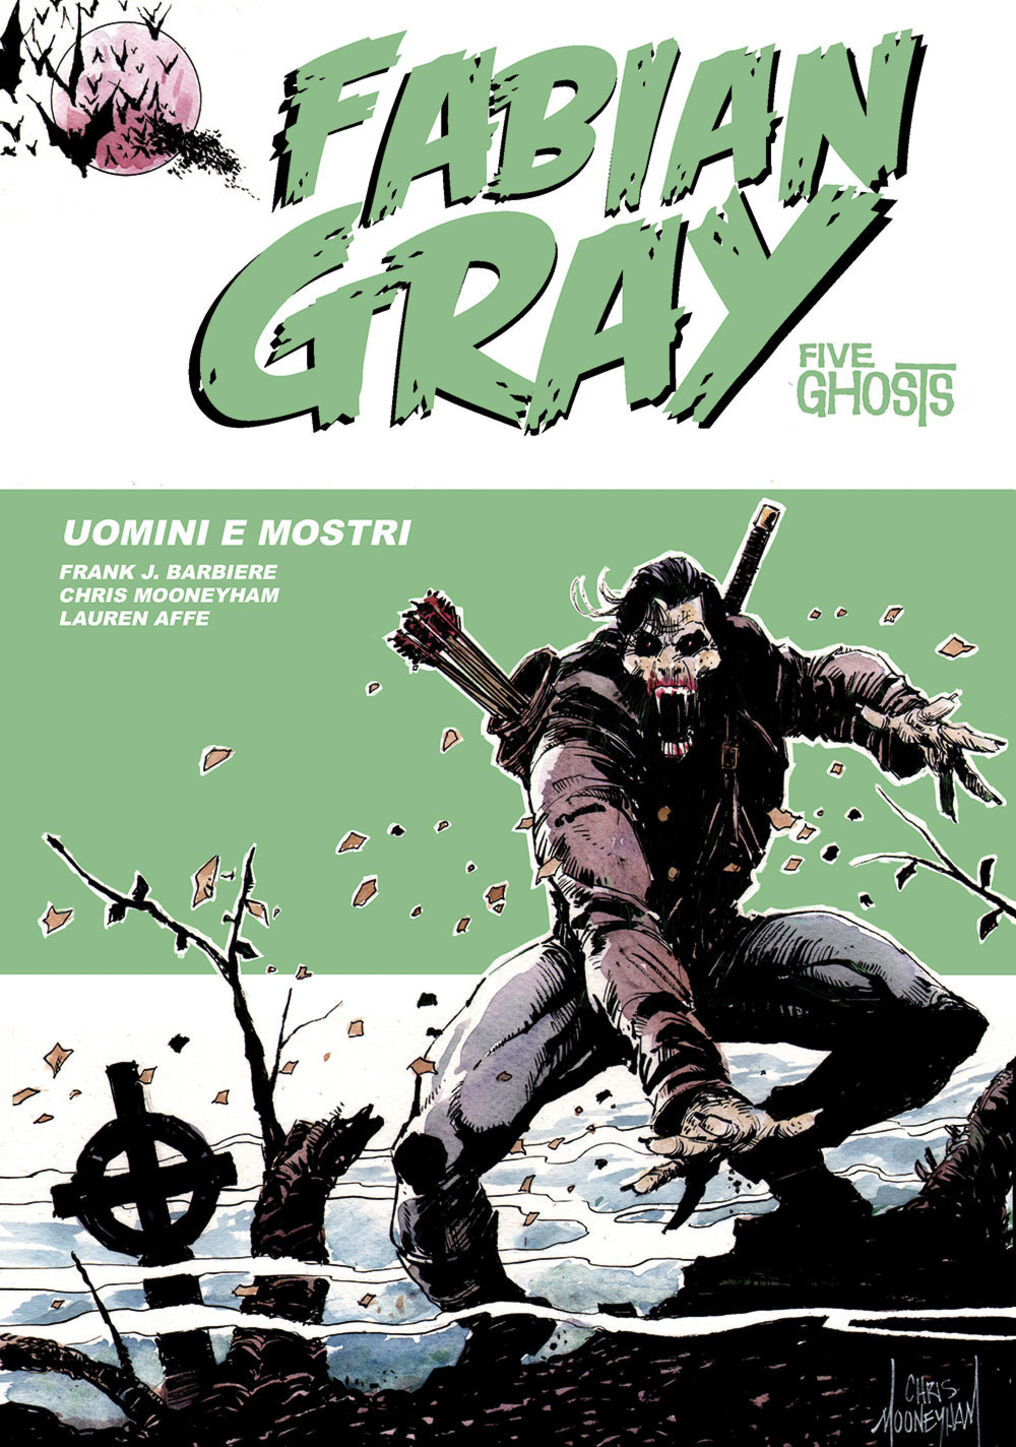 Uomini e mostri. Five ghosts. Fabian Gray. Vol. 3